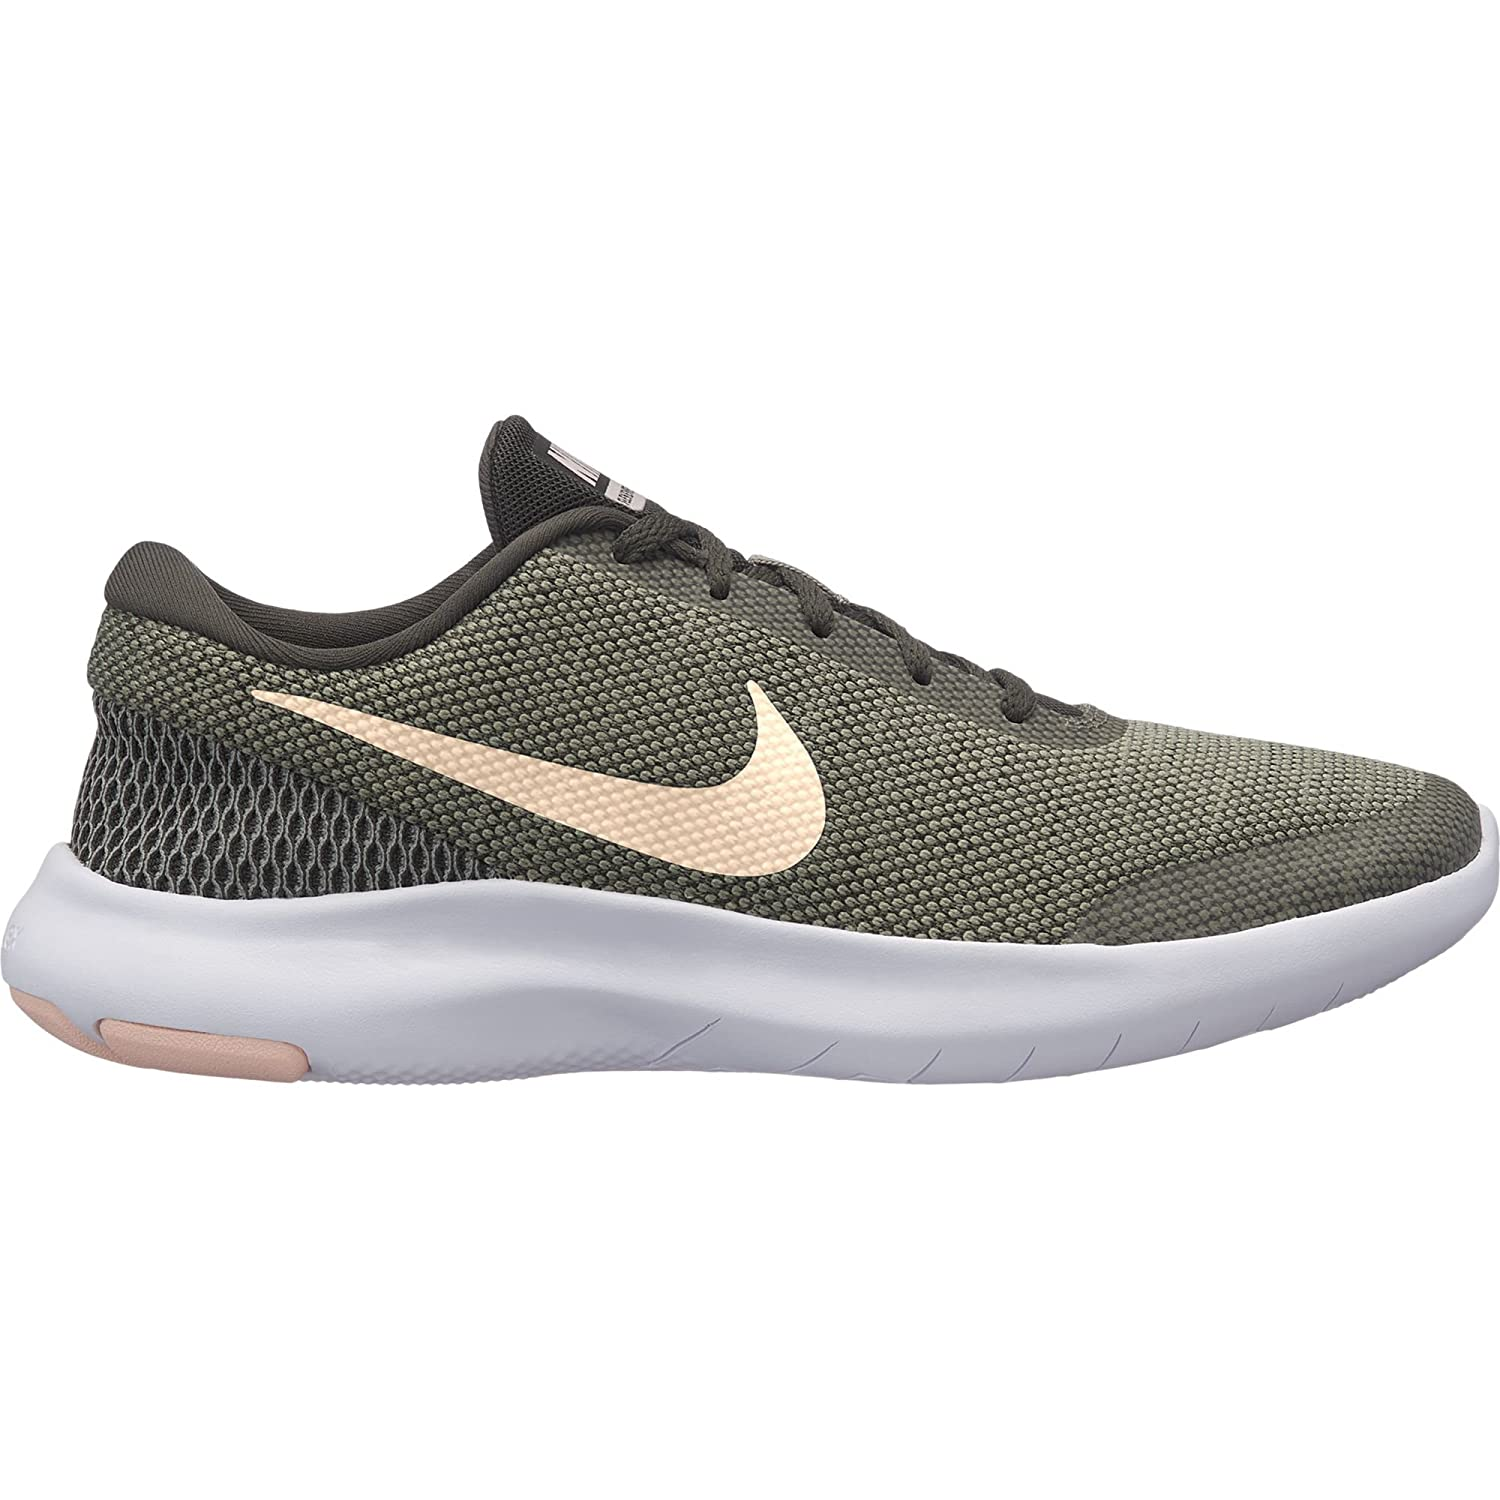 NIKE Women's Flex Experience 7 Running Shoe Tint/Dark B07F1ZP6DJ 10 B(M) US|Newsprint/Crimson Tint/Dark Shoe Stucco/White 97b801